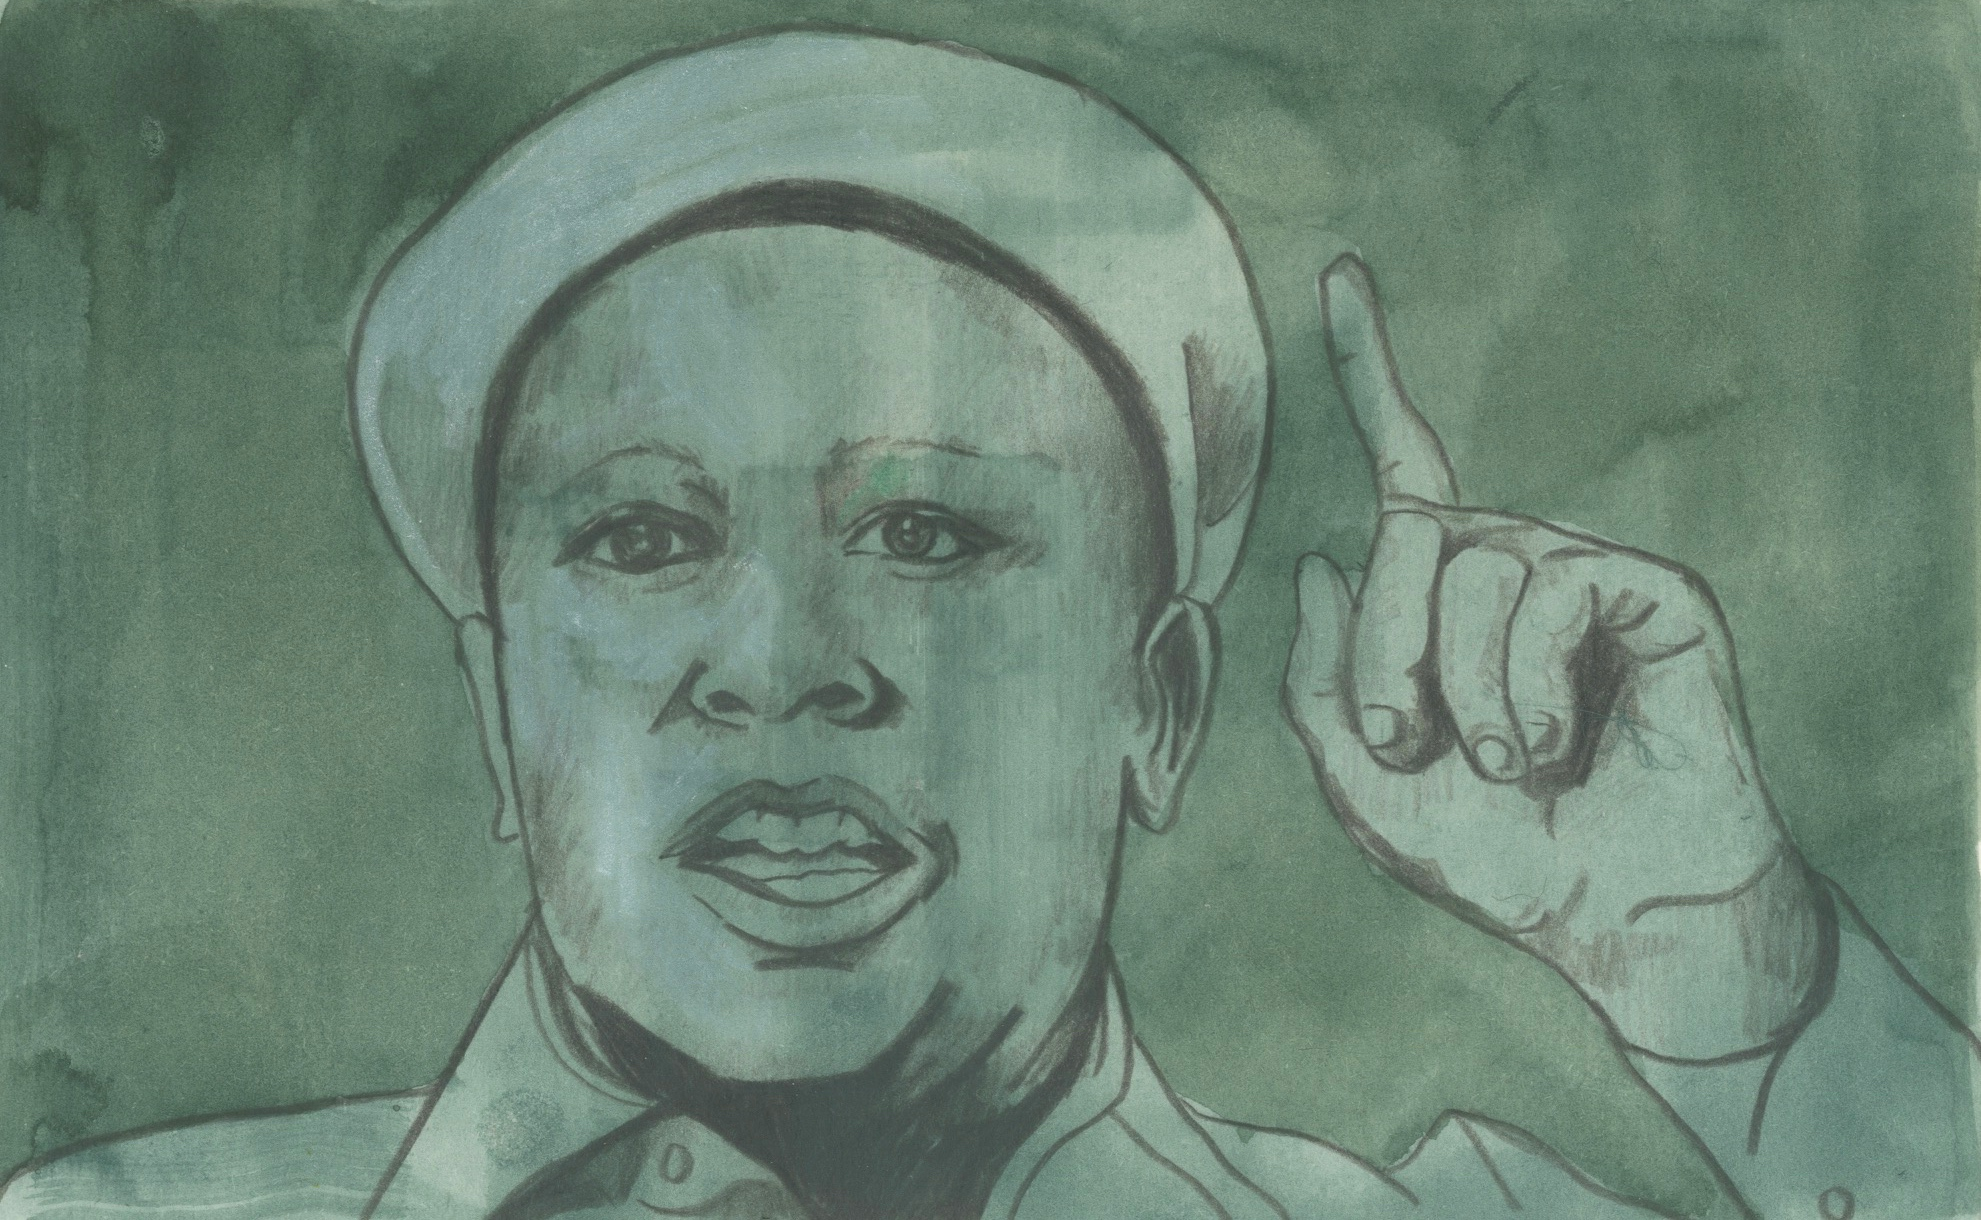 06/04/15Julius Malema, leader of the Economic Freedom Fighters, calls for symbols of colonialism to be removed and the seizure of white-owned farms in South Africa